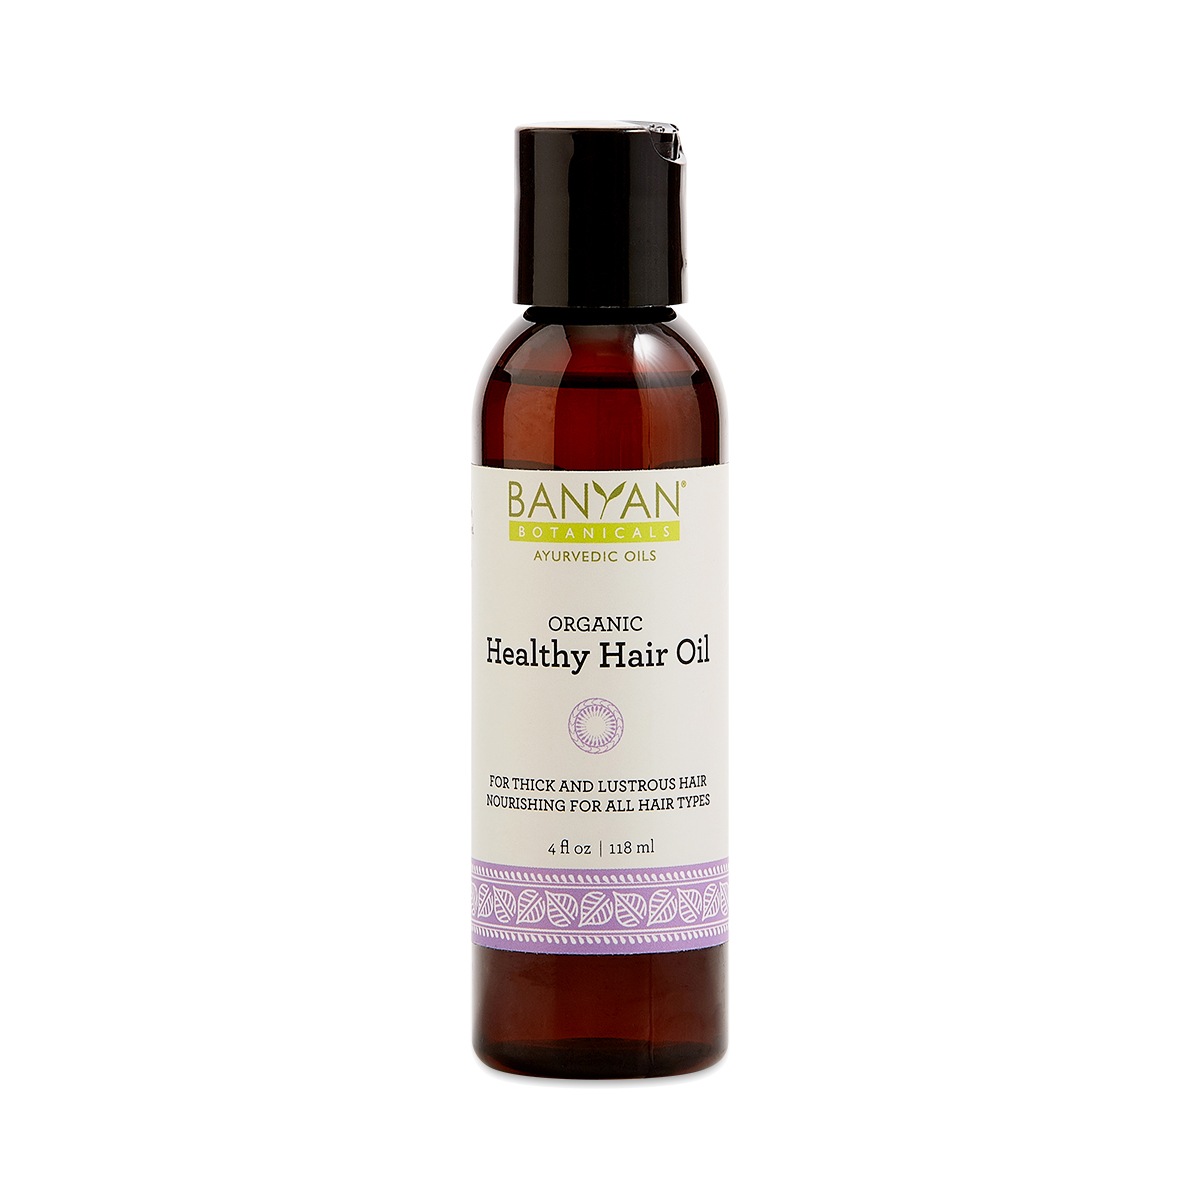 Banyan Botanicals Healthy Hair Oil Thrive Market